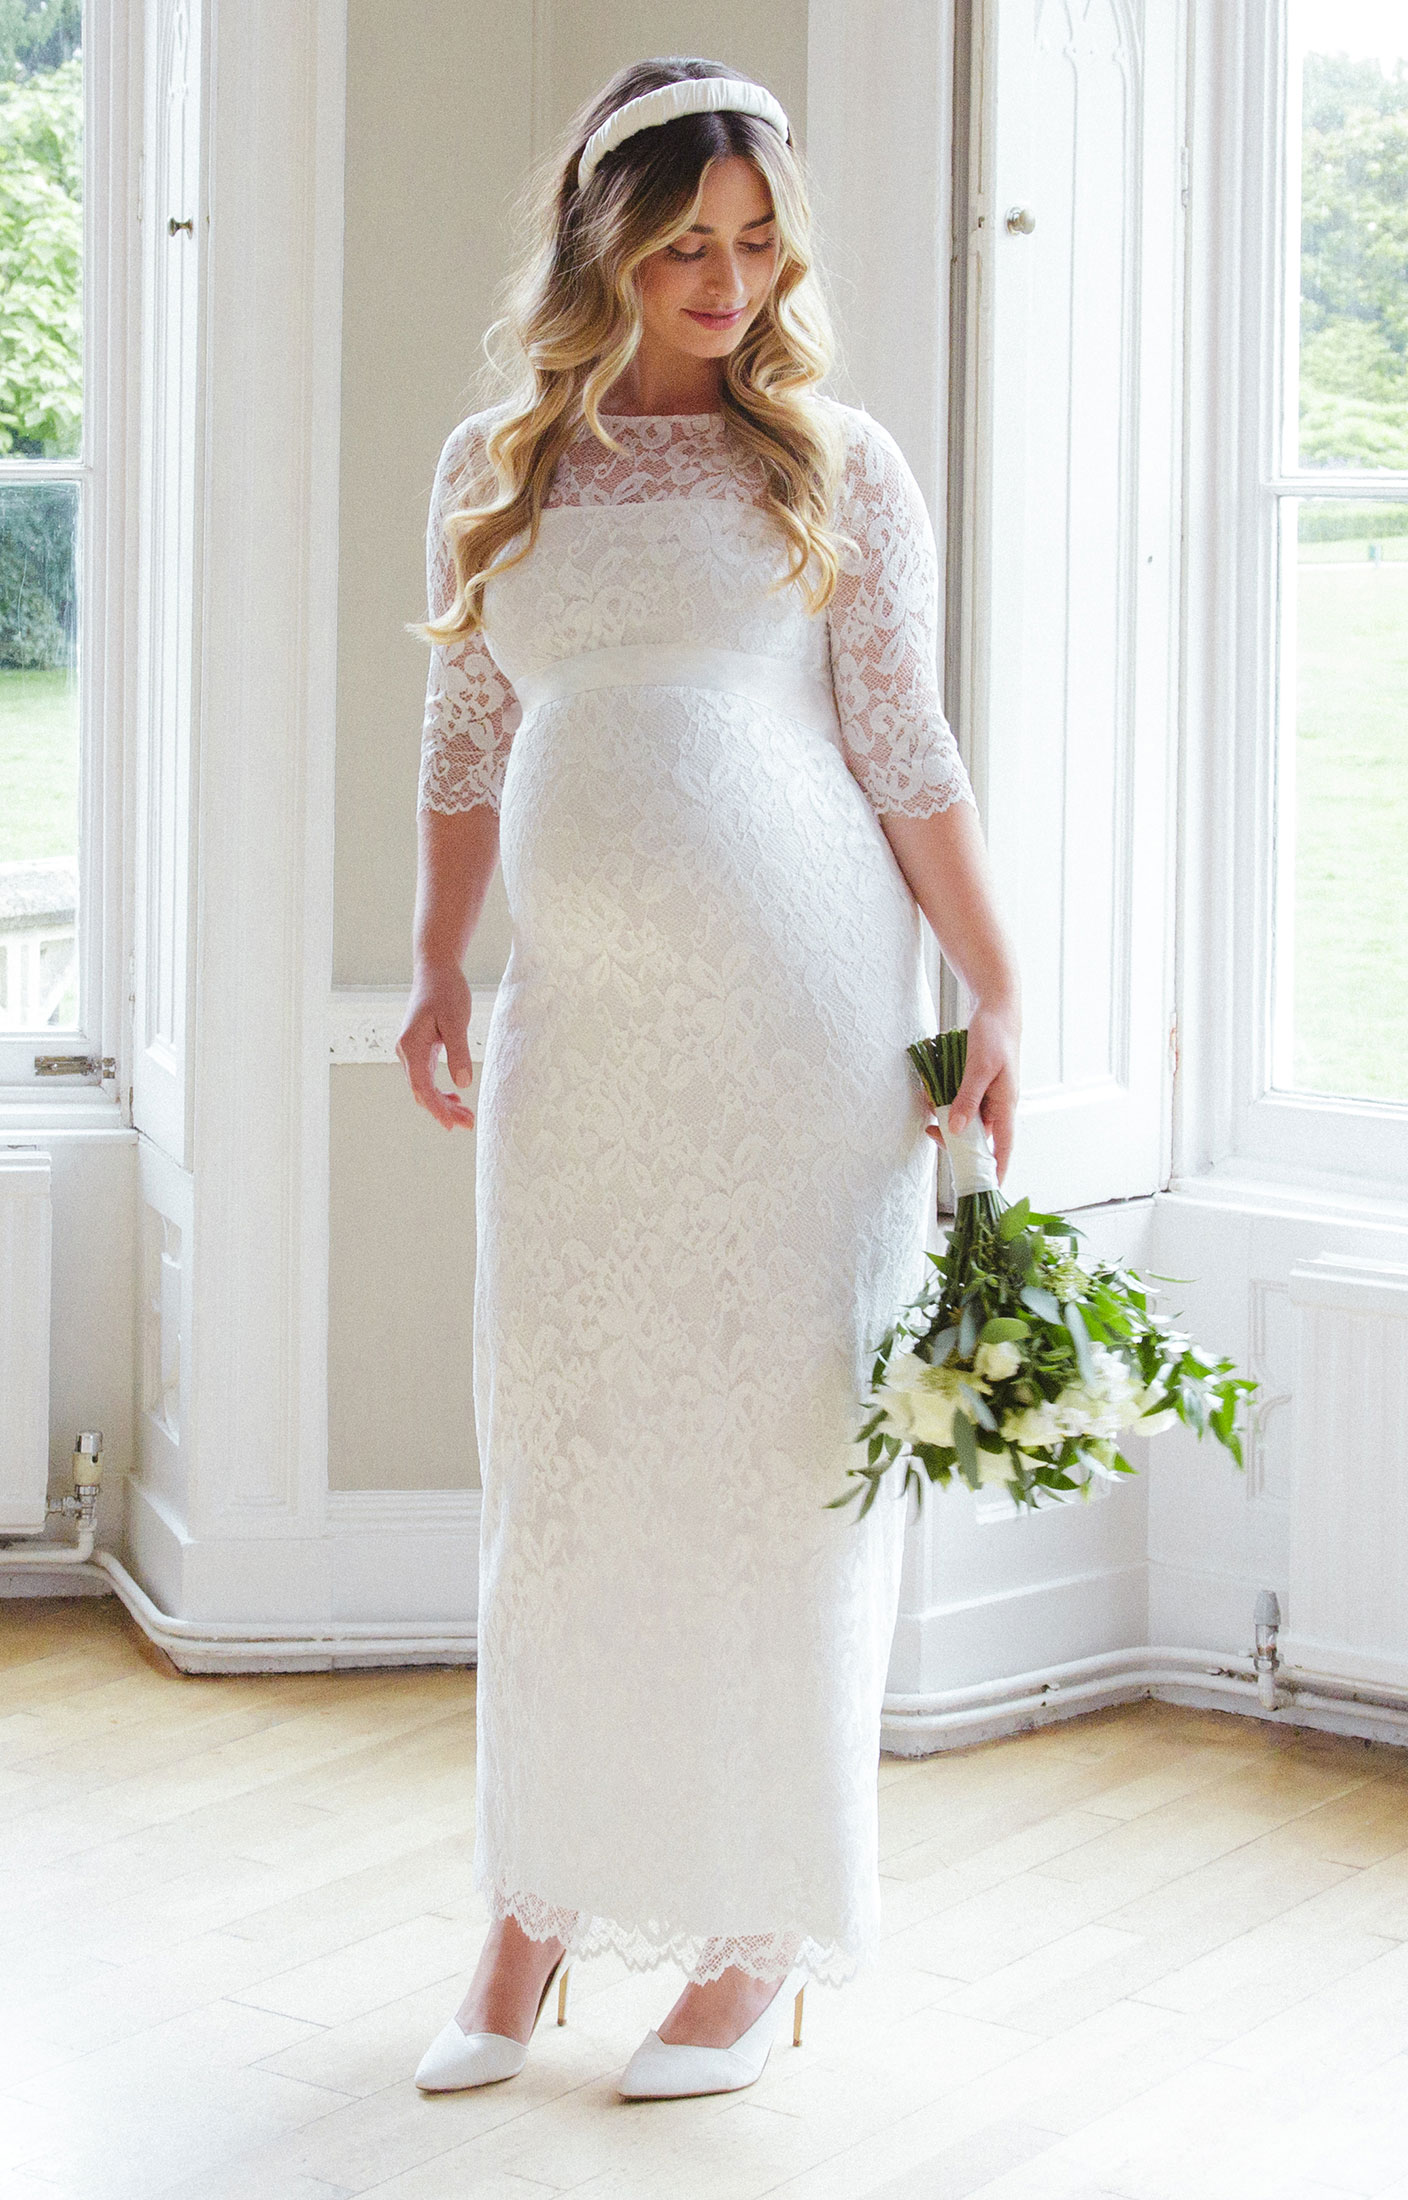 Amelia Lace Maternity Wedding Dress Long (Ivory) maternity dresses for wedding Amelia Lace Maternity Wedding Dress Long Ivory Maternity Wedding Dresses Evening Wear and Party Clothes by Tiffany Rose